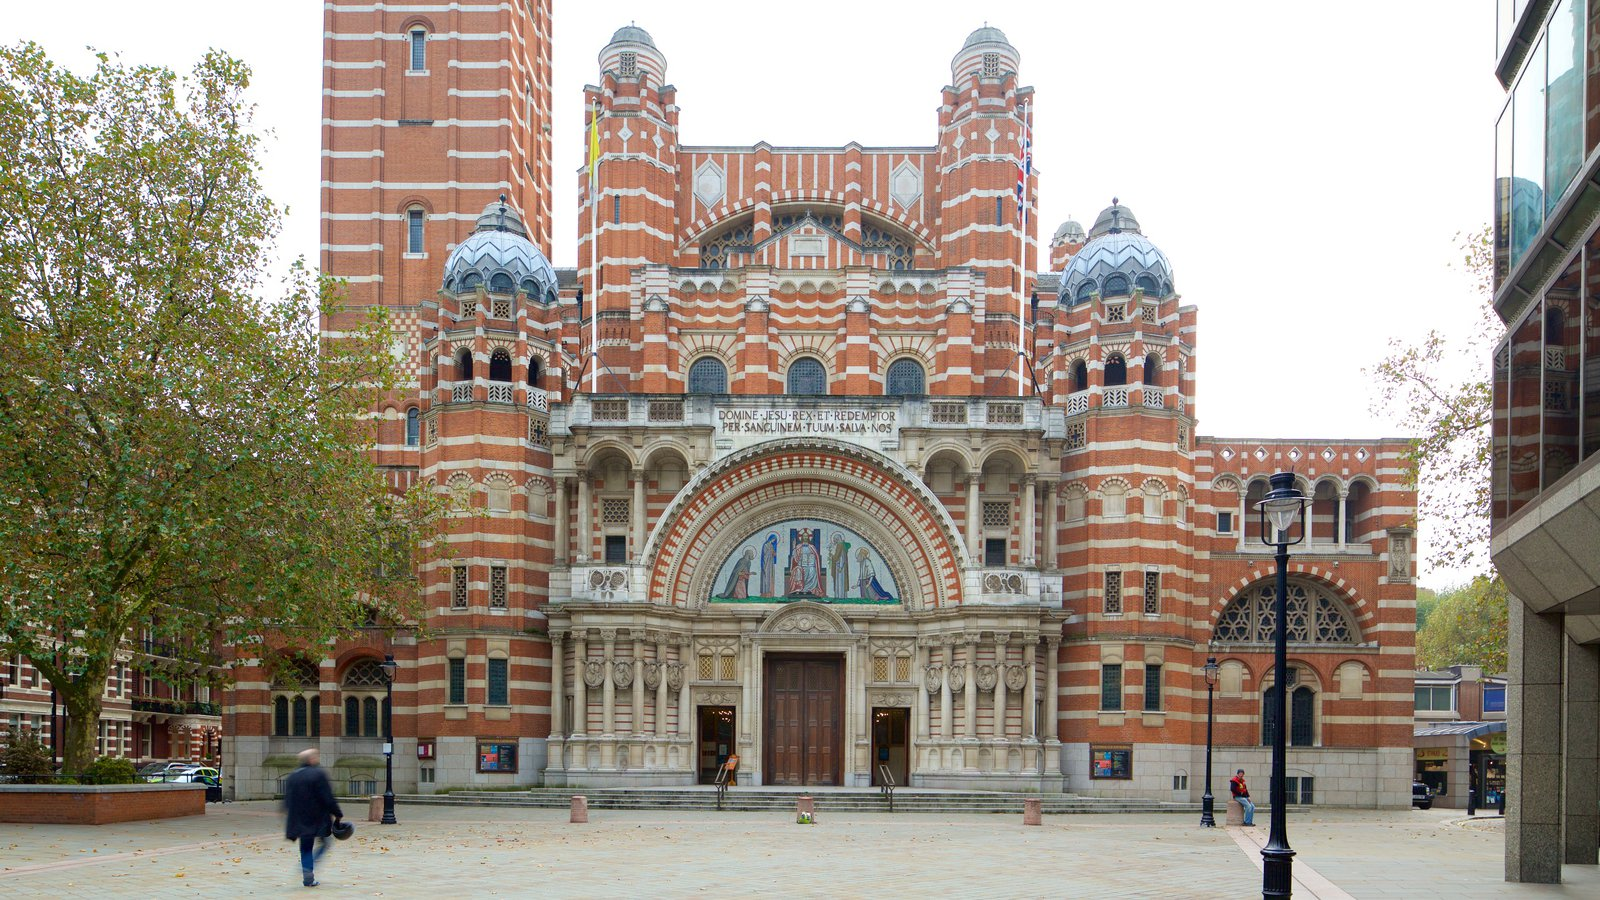 Westminster Cathedral Pictures: View Photos & Images of ...